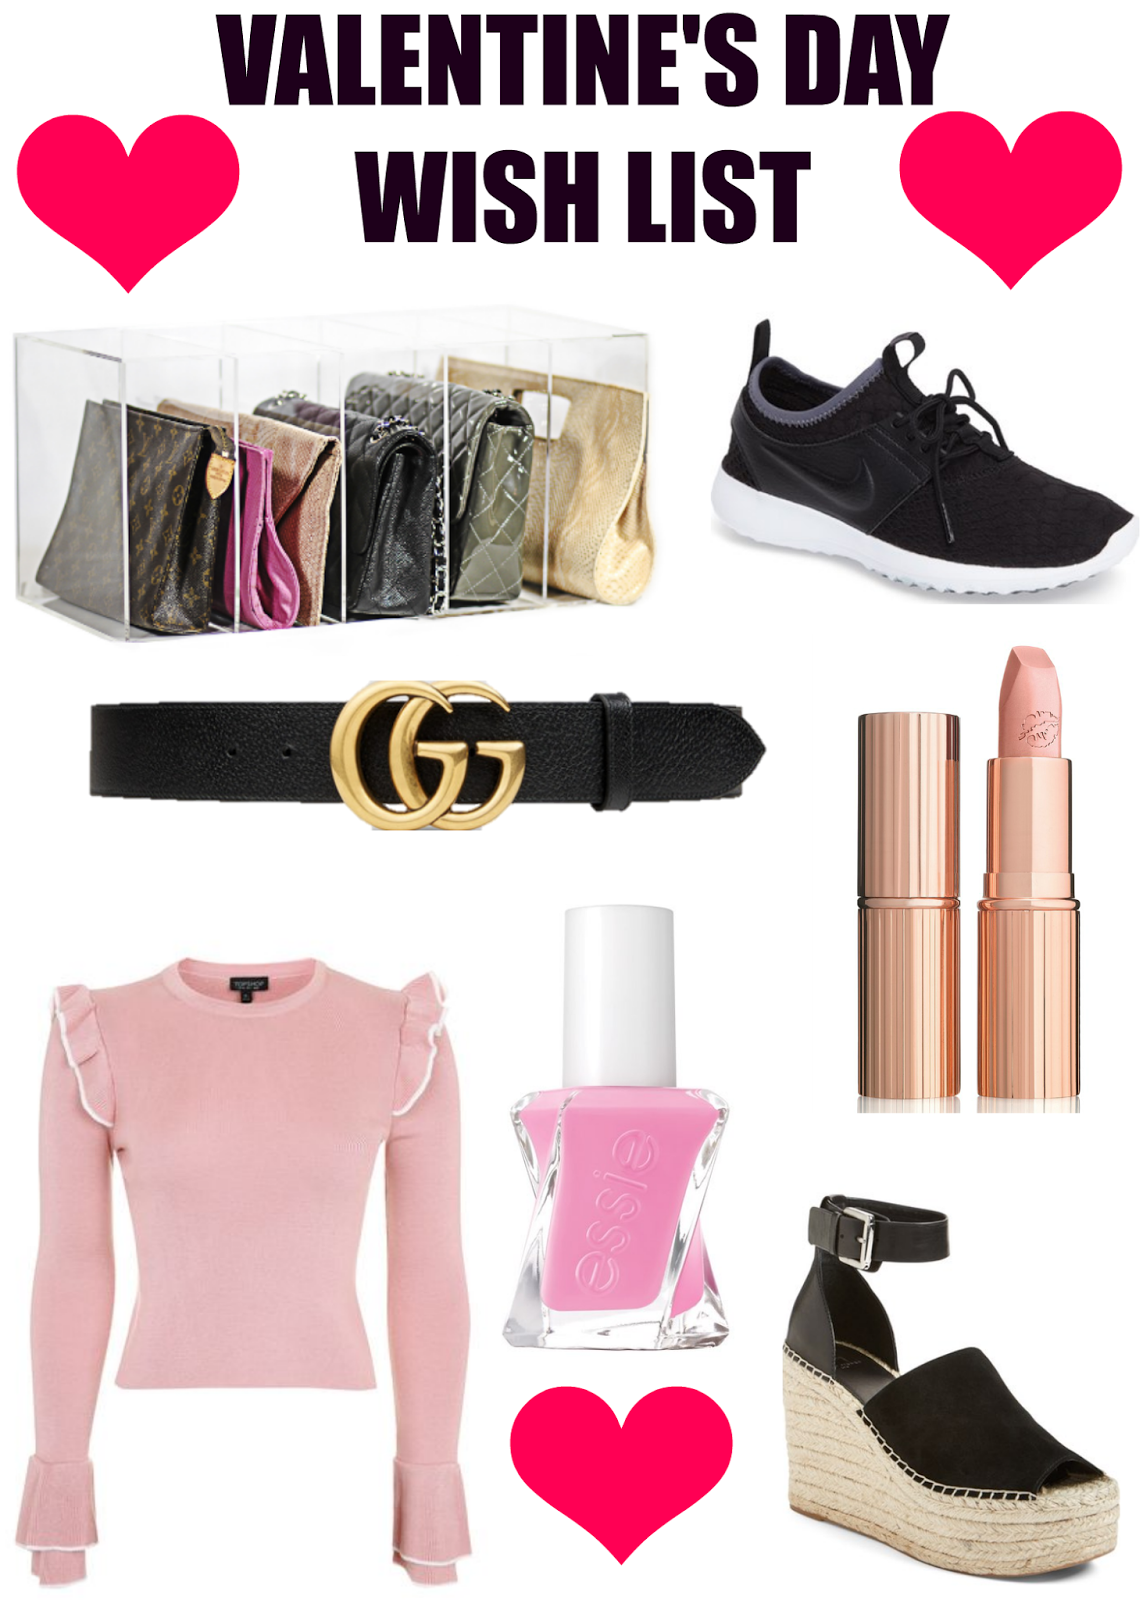 gift guide for valentines day, charlotte tilbury lipstick, nike sneakers, gucci belt, essie gel couture nail polish, glambox, marc fisher espadrilles